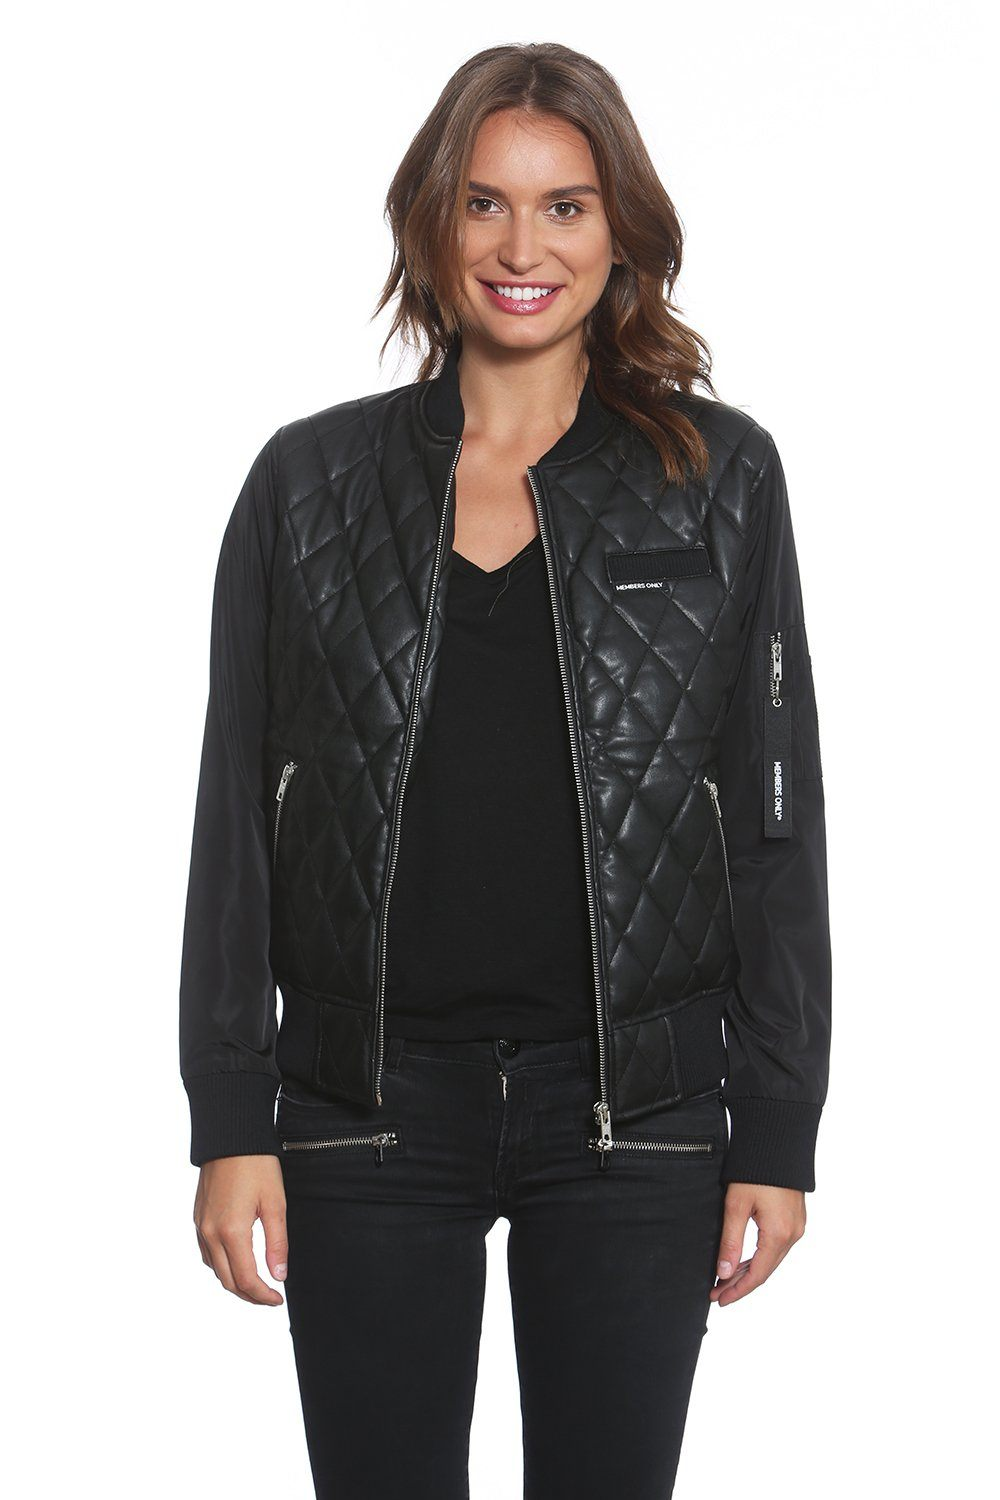 Members Only Jackets for Women | Official Online Store – Members ... : leather quilted vest - Adamdwight.com